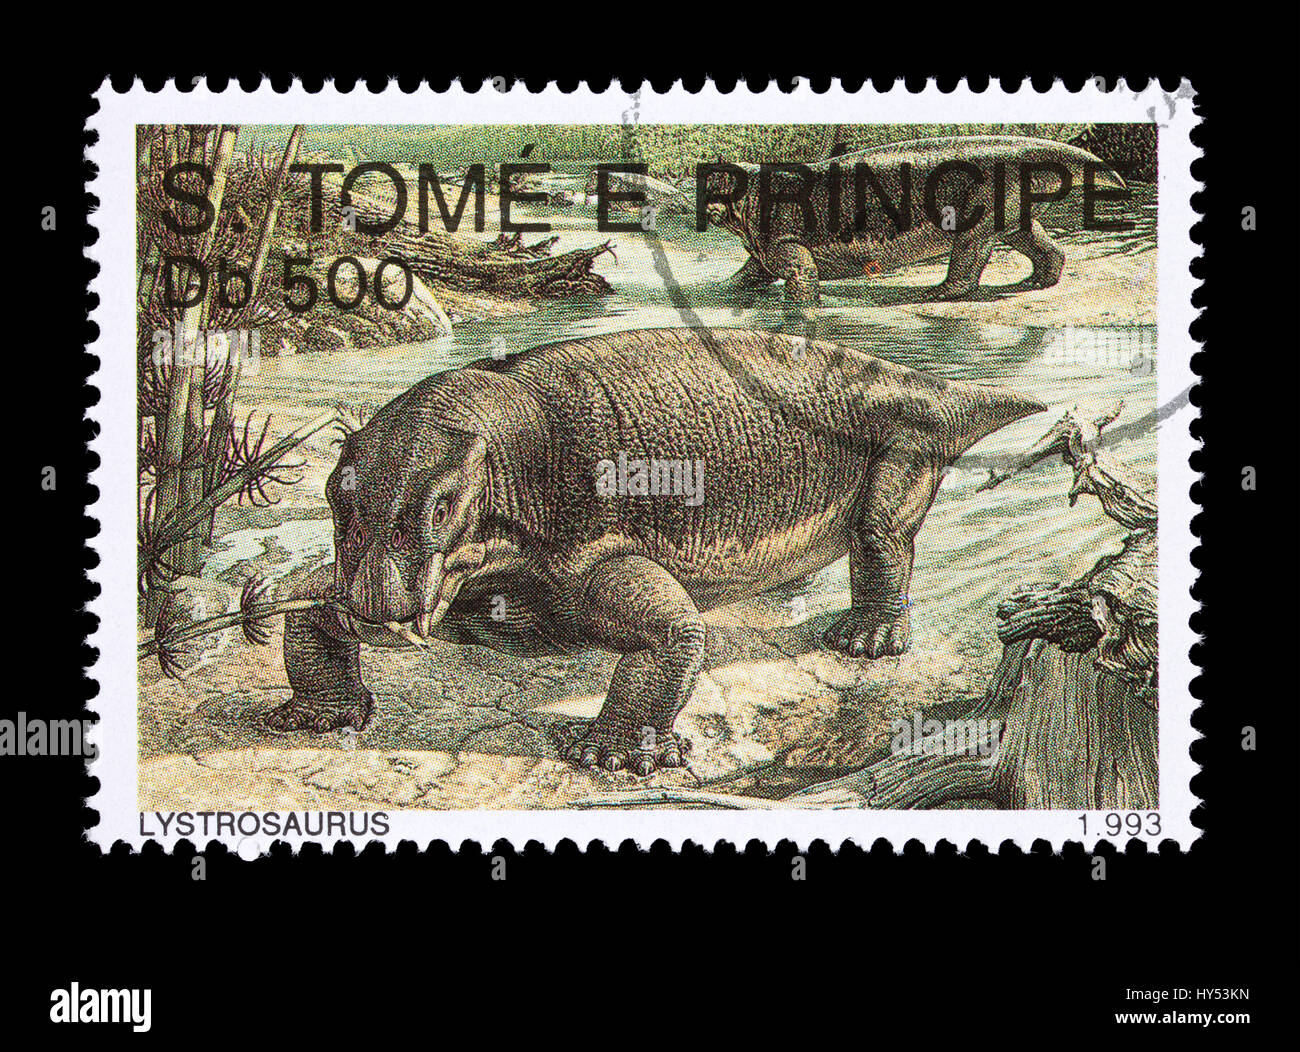 Postage stamp from Saint Thomas and Prince Islands depicting a lystrosaurus - Stock Image